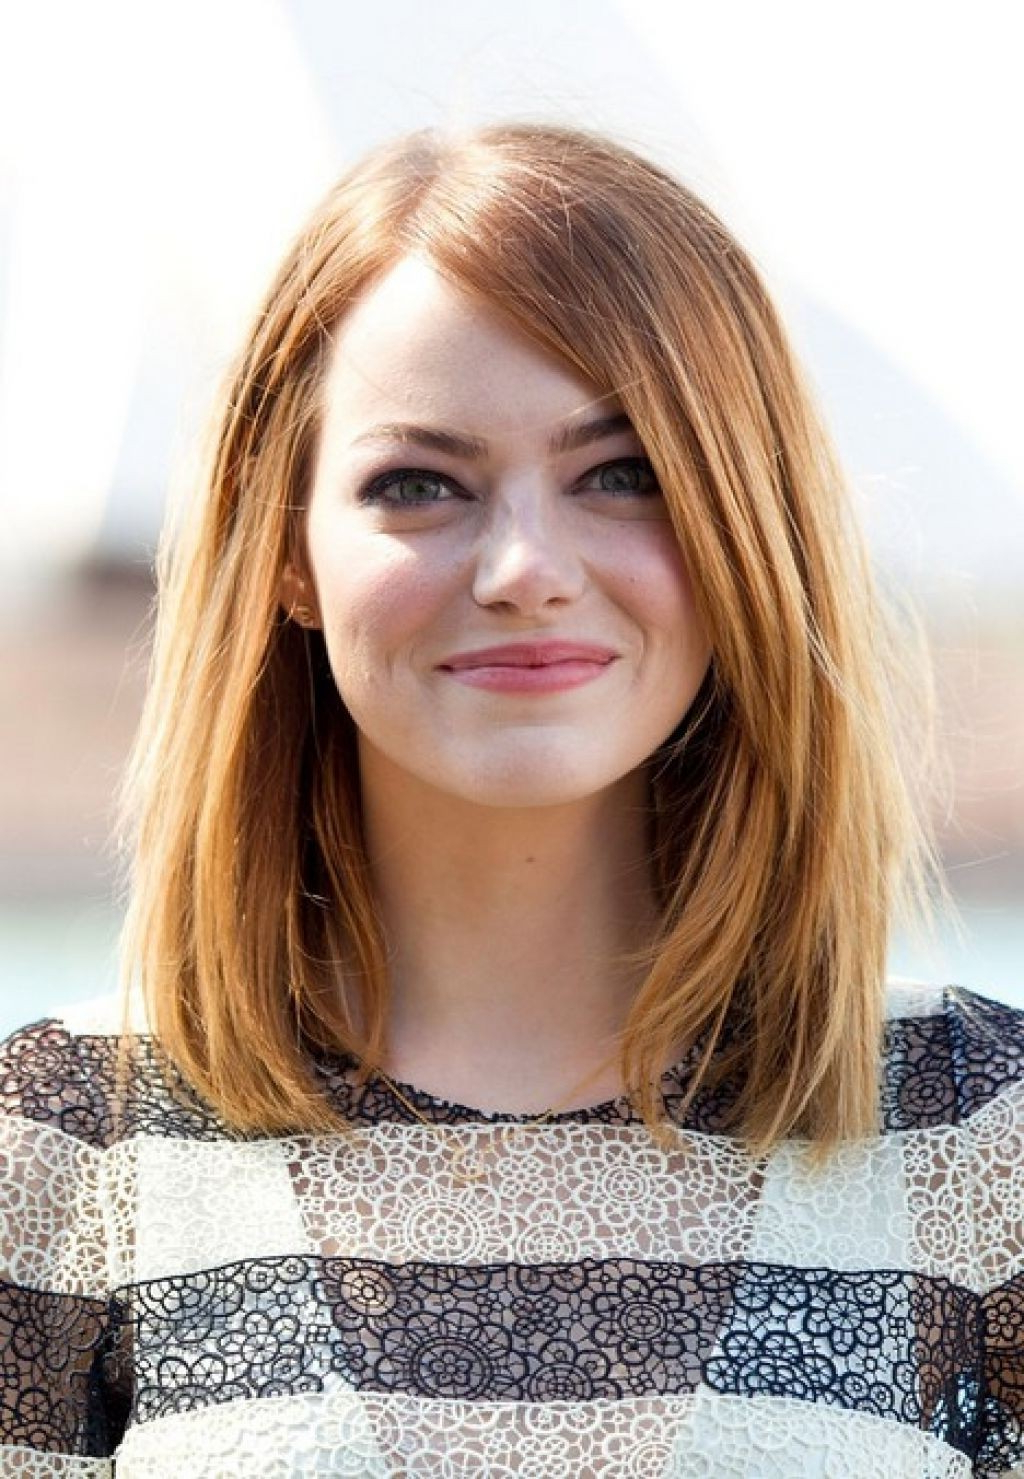 Most Current Medium Haircuts For Round Faces And Thin Hair Intended For Hair Cuts : Haircuts For Round Faces Women Haircuts For Round Faces (View 14 of 20)